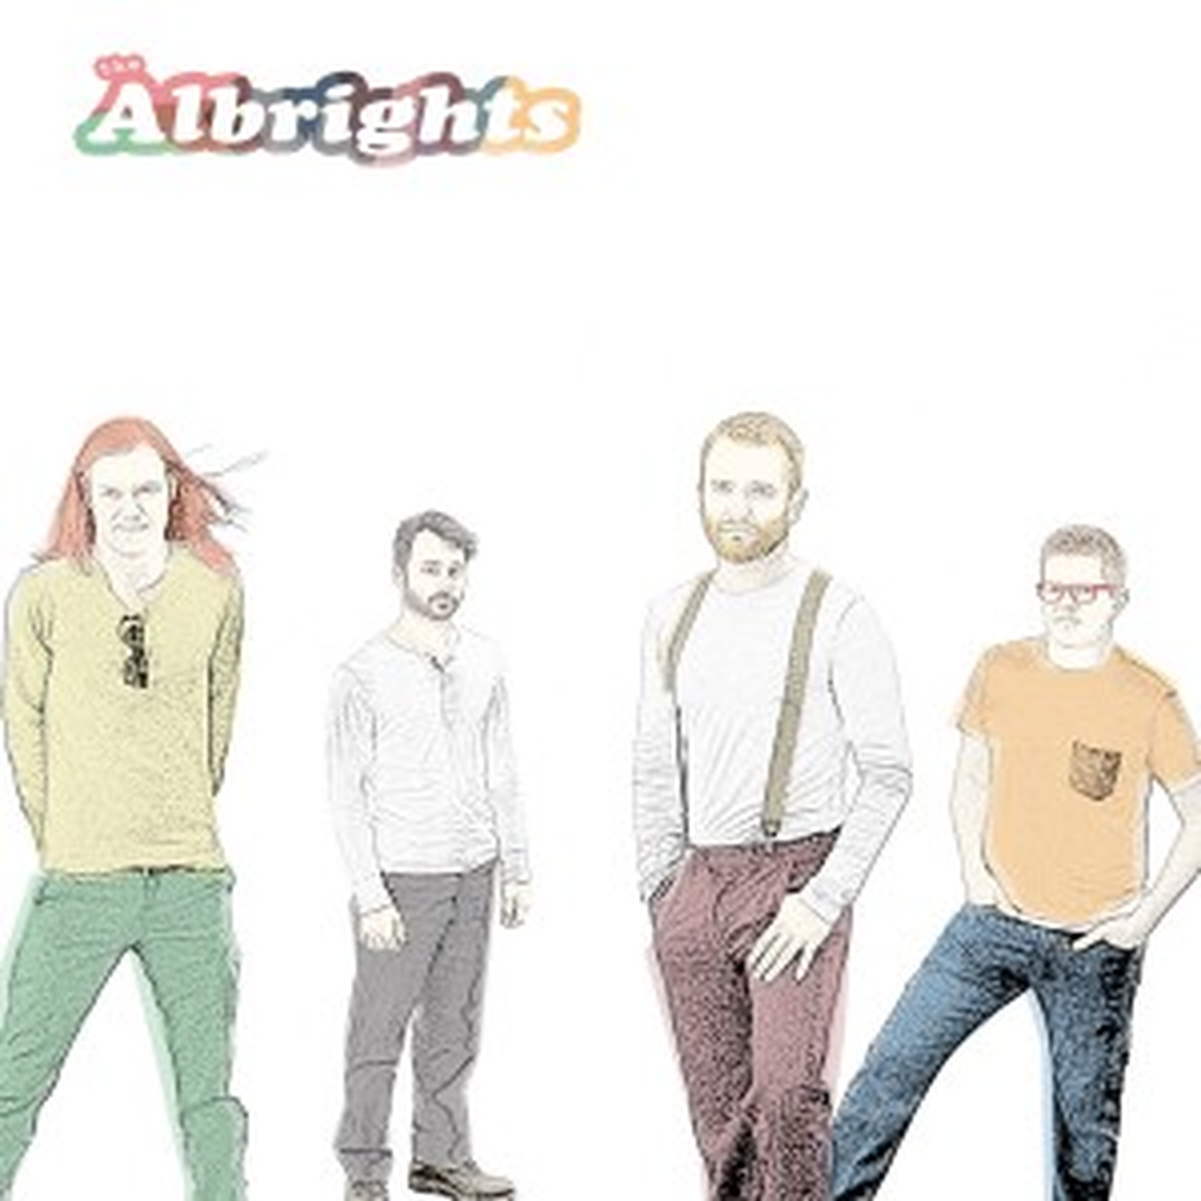 The Albrights wiki, The Albrights review, The Albrights history, The Albrights news